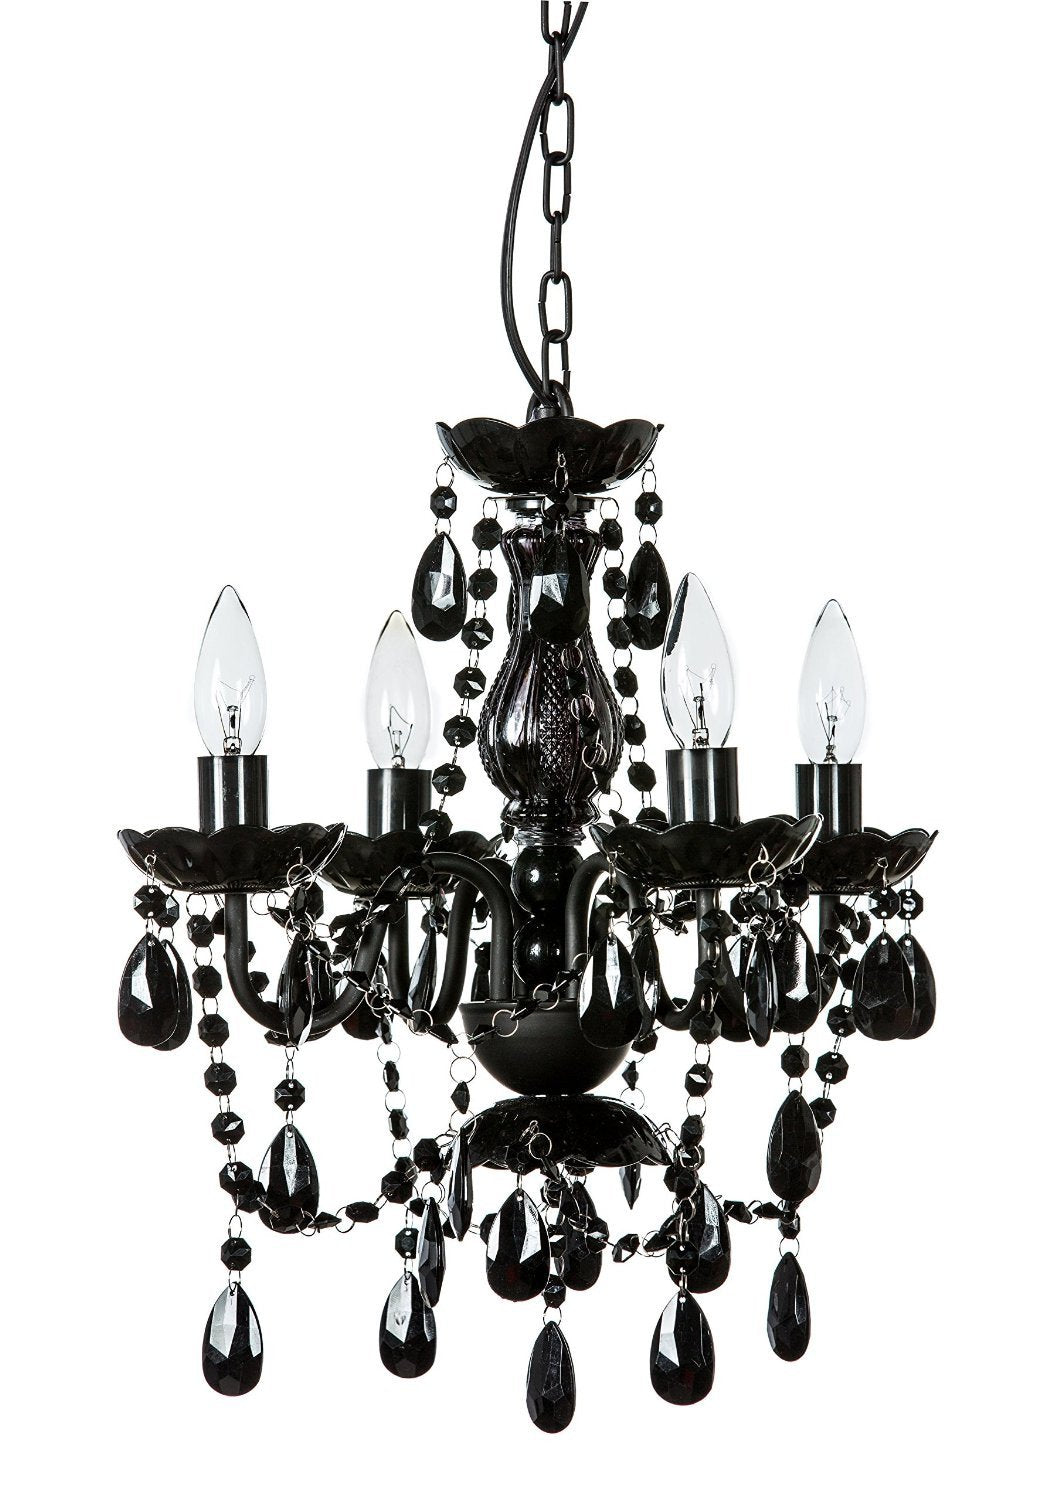 Blakely Black Acrylic Crystal Boho Gypsy Chandelier In 3 Sizes Gogetglam Style